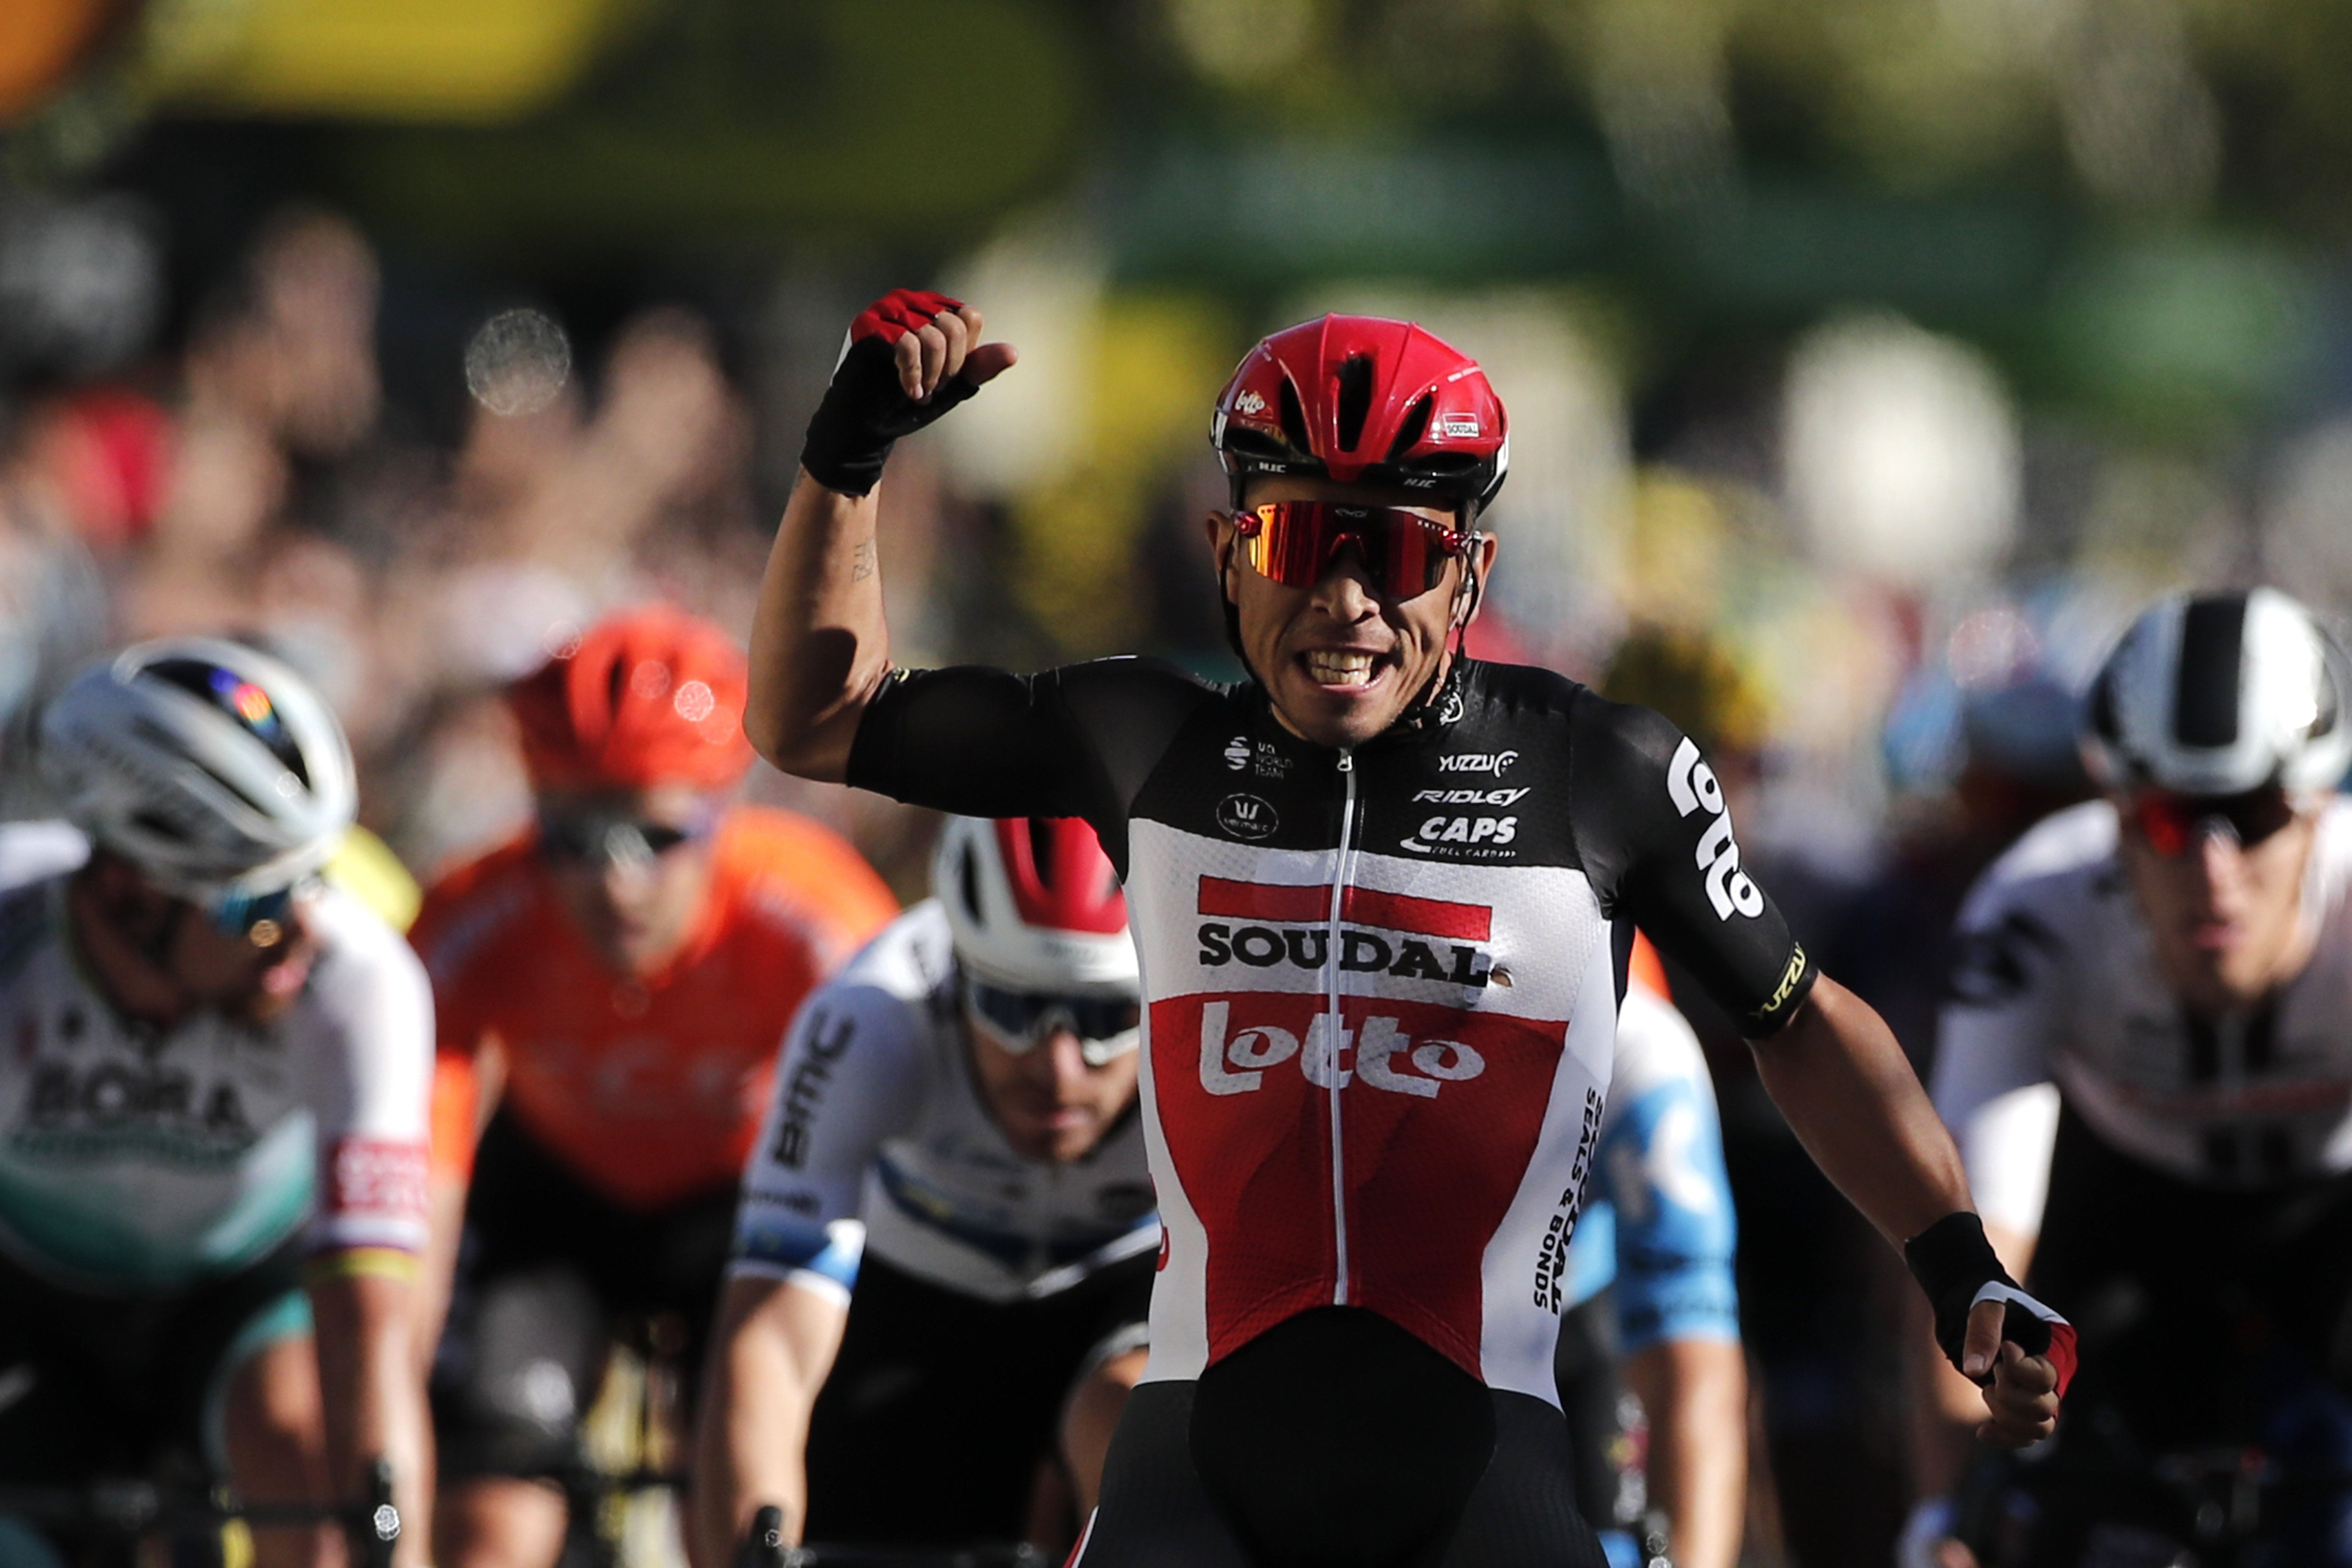 Ewan Slaloms To Sprint Win Alaphilippe Leads Tour De France Wjhl Tri Cities News Weather